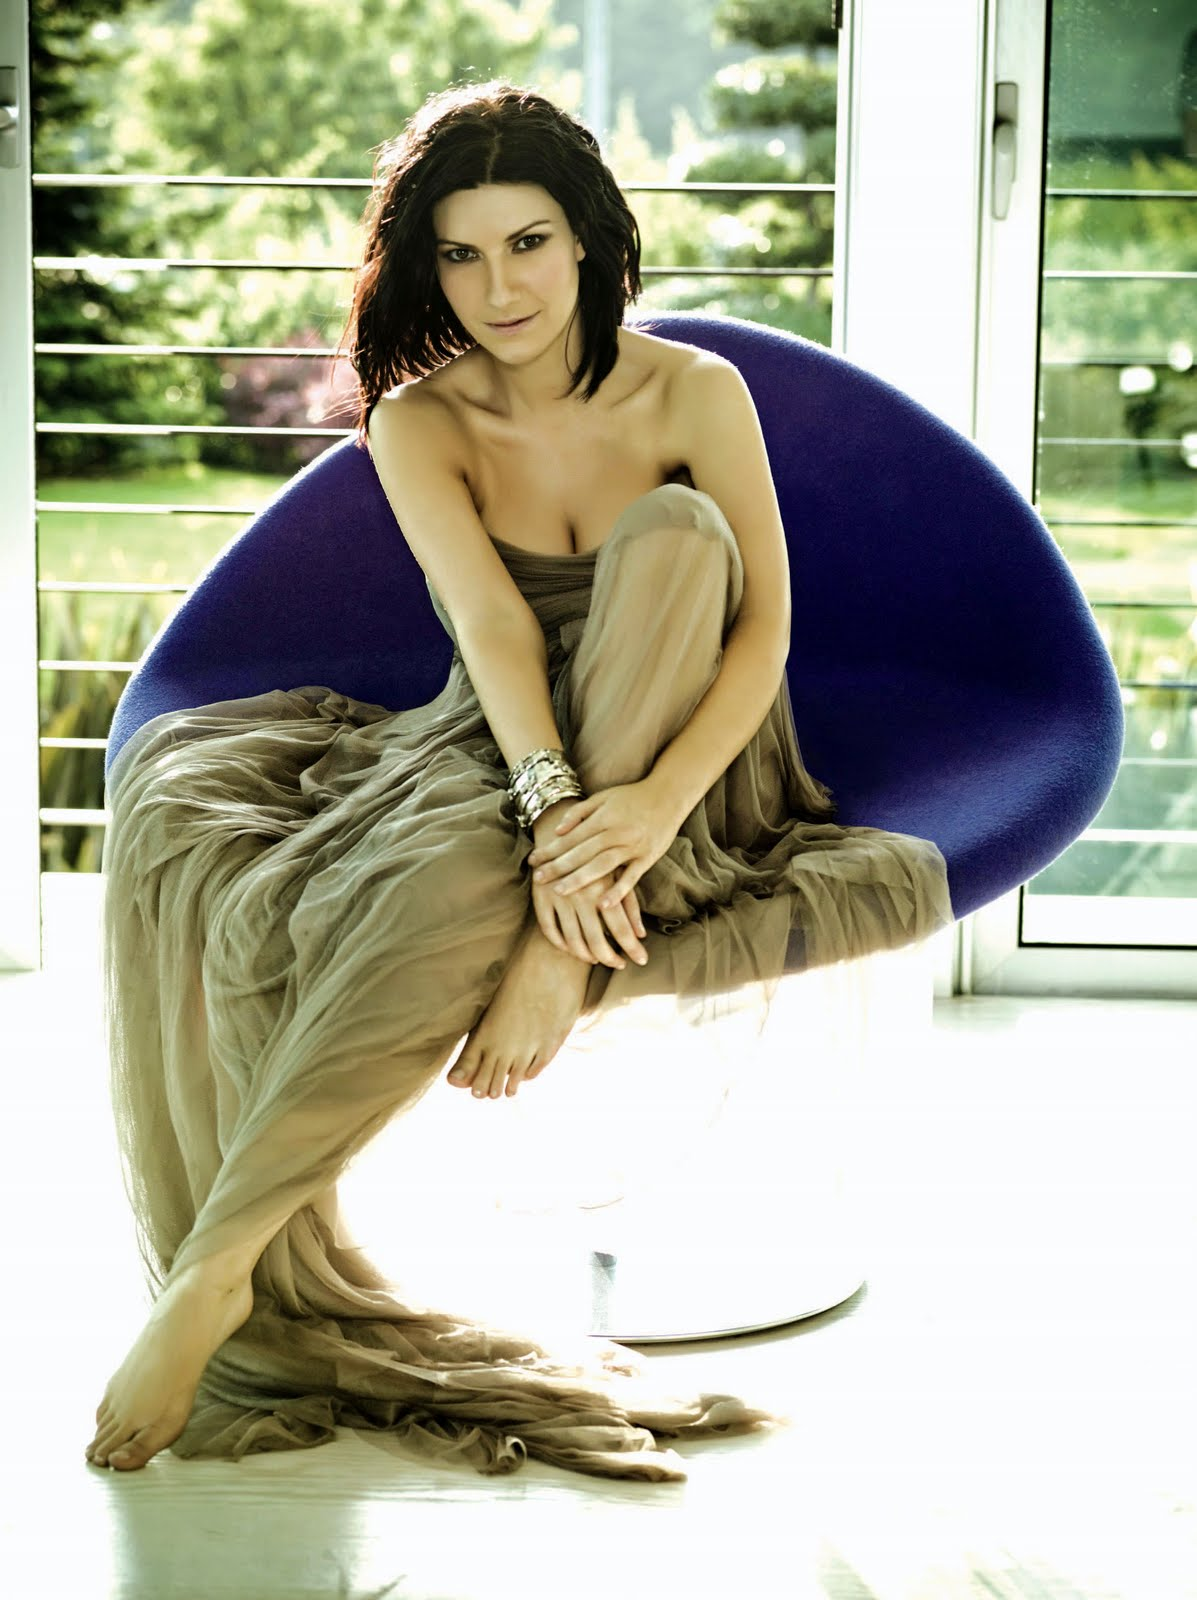 Laura Pausini images Primavera Anticipada wallpaper and background